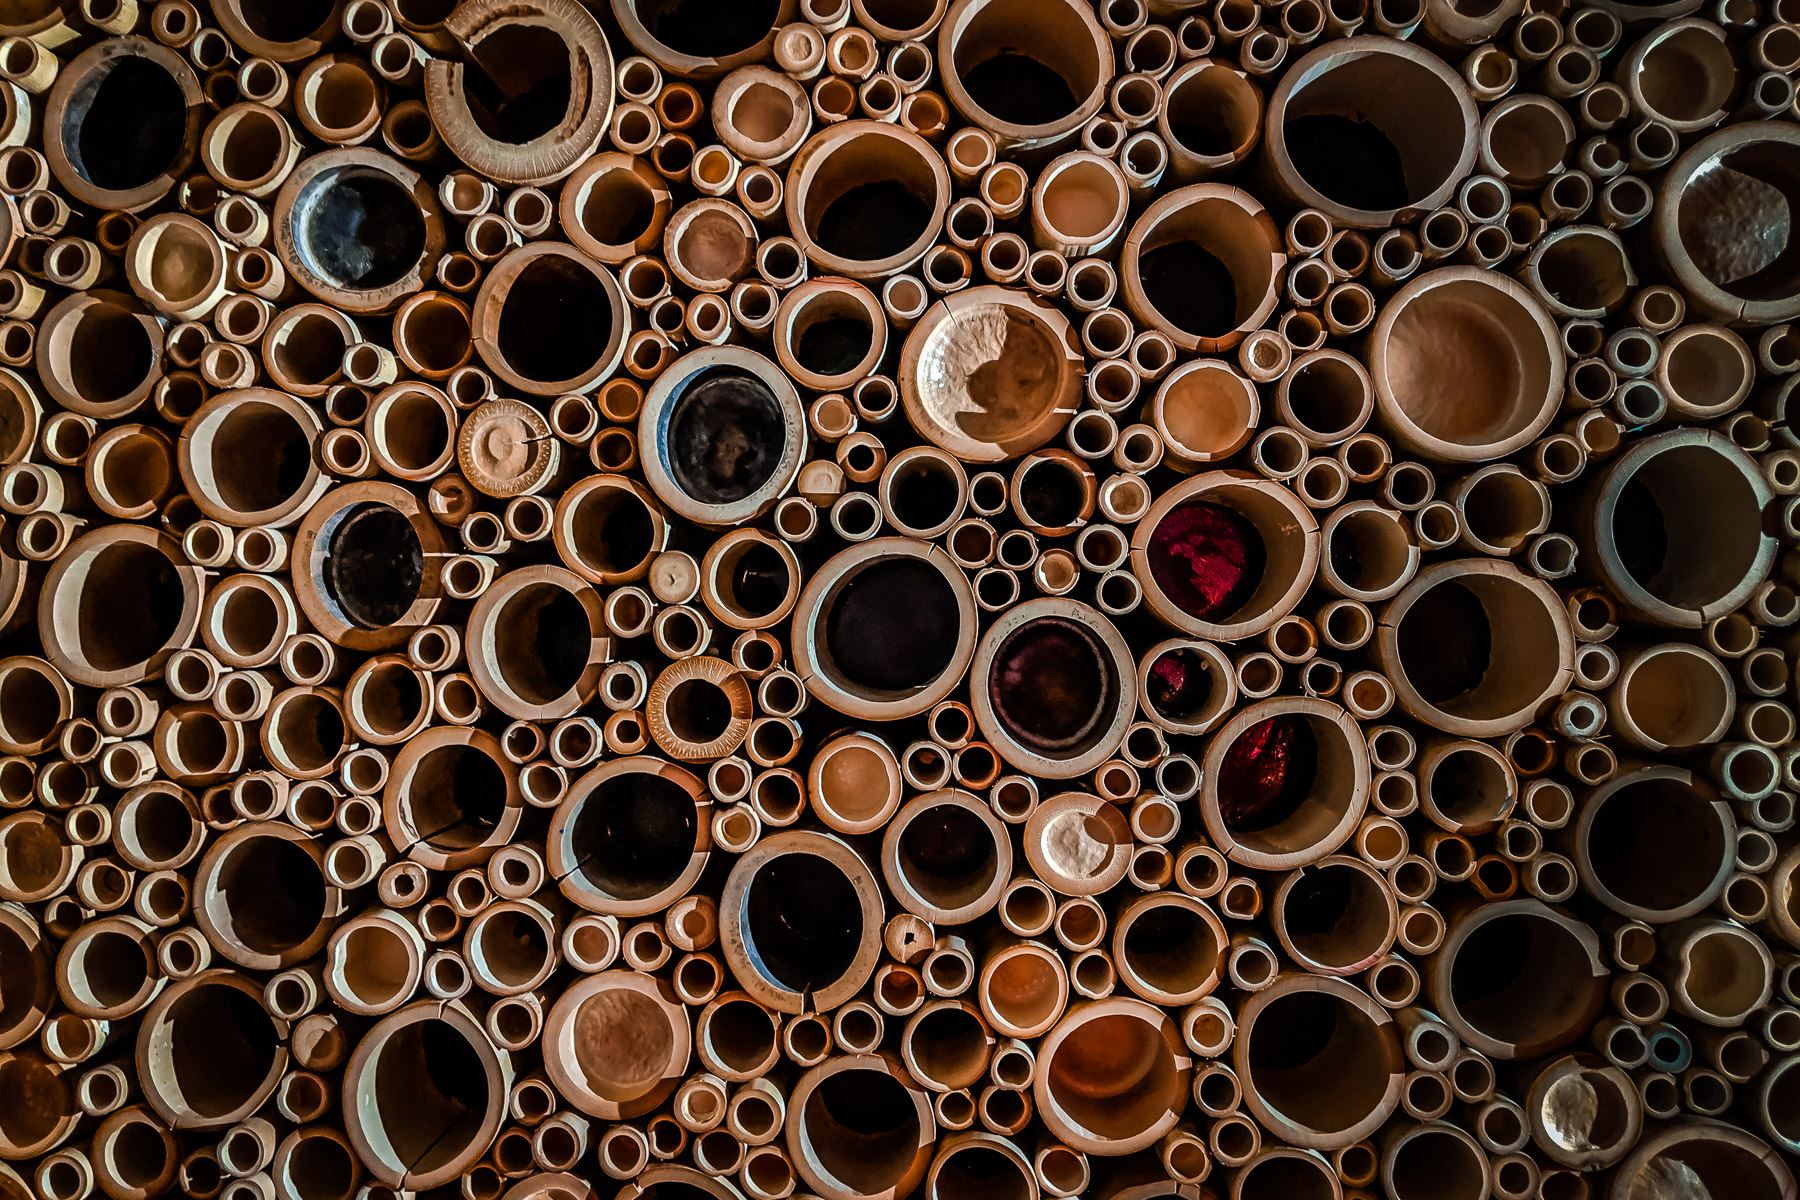 Cross sections of bamboo make up an abstract artwork at a McKinney, Texas, restaurant.